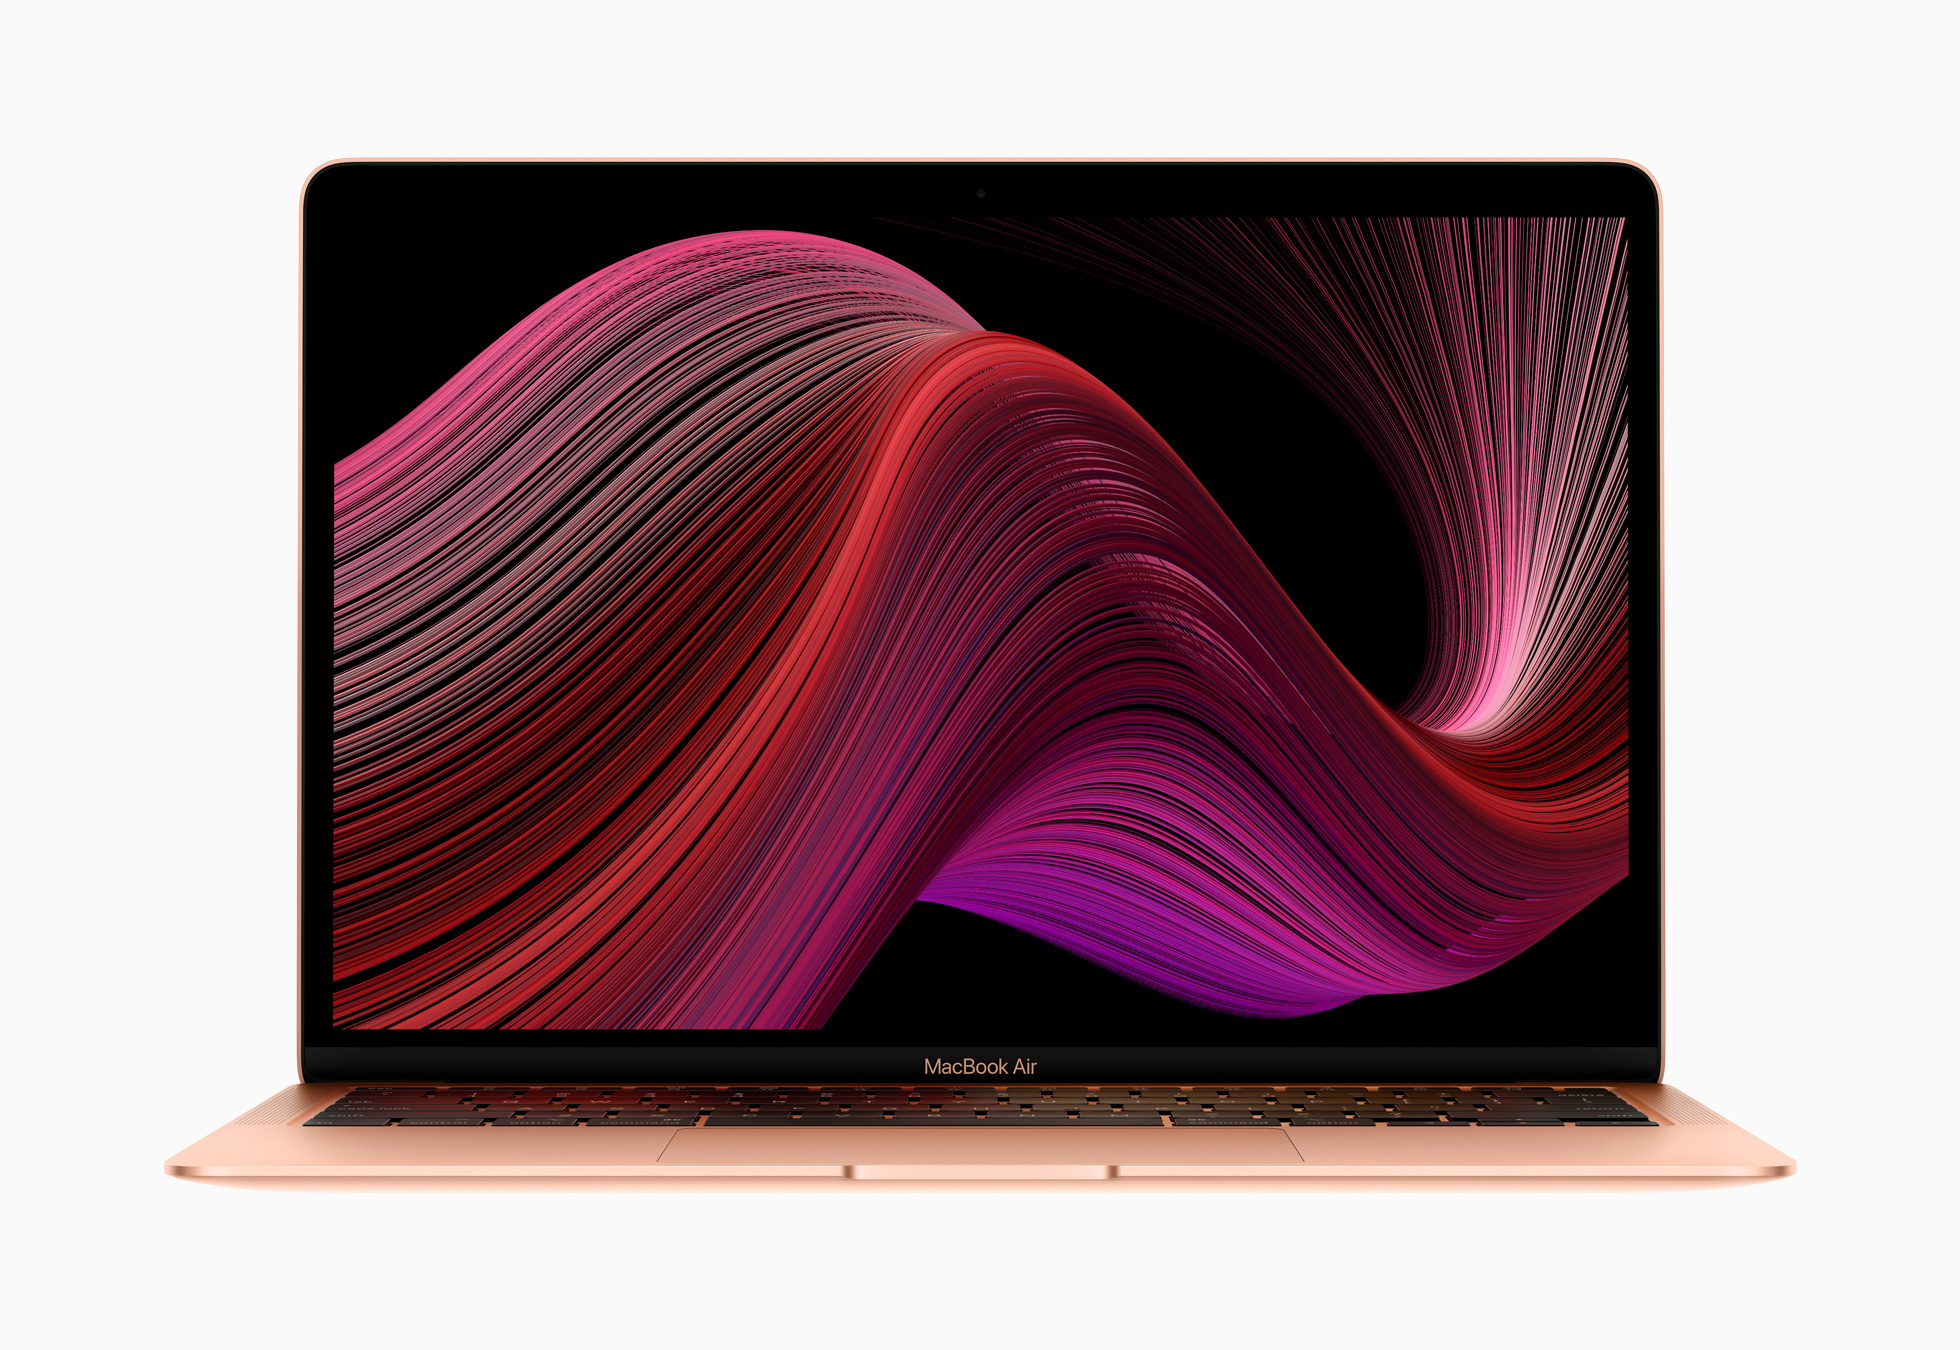 macbook-air-2020-official-price-specs-release-date-availability-philippines (6)